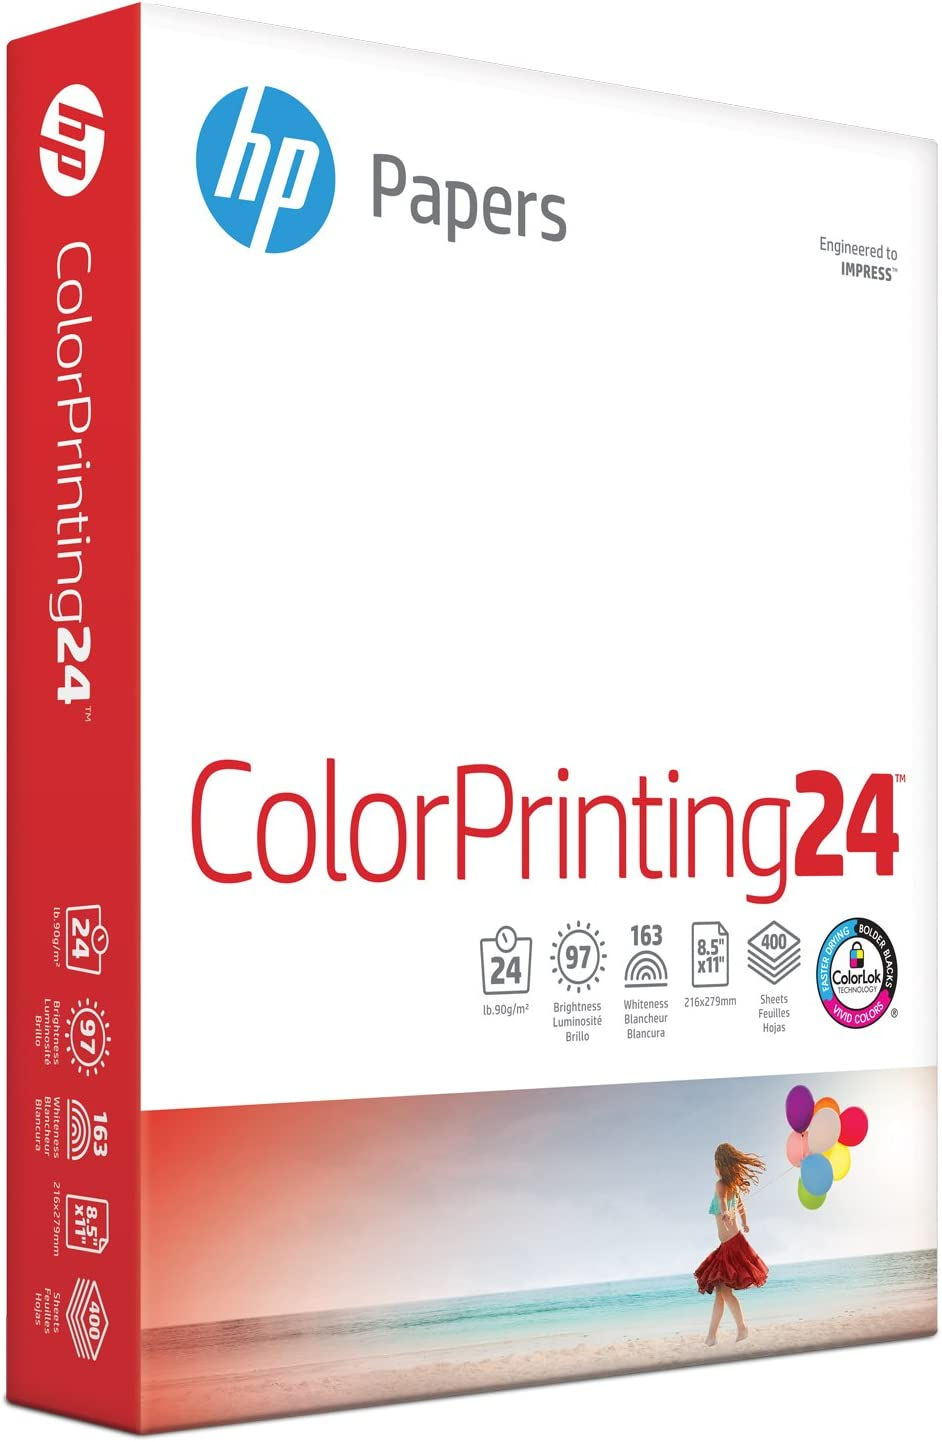 HP Printer Paper 8.5x11 ColorPrinting 24 lb 1 Pack 400 Sheets 97 Bright Made in USA FSC Certified Copy Paper HP Compatible 202040R